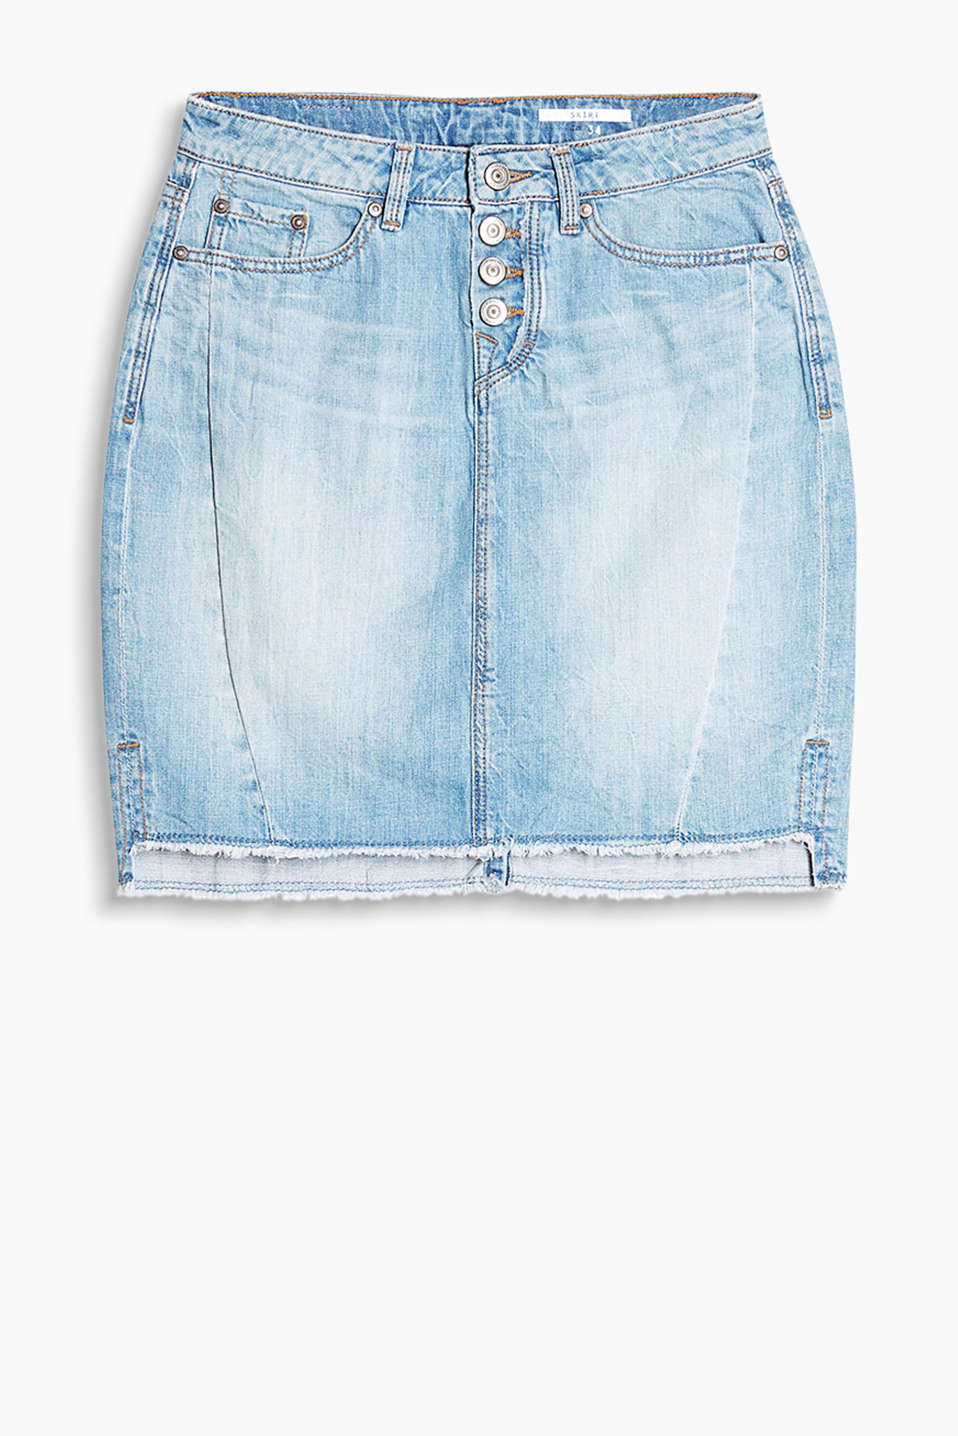 Garment-washed denim skirt in 100% cotton with a frayed hem edge and a button placket